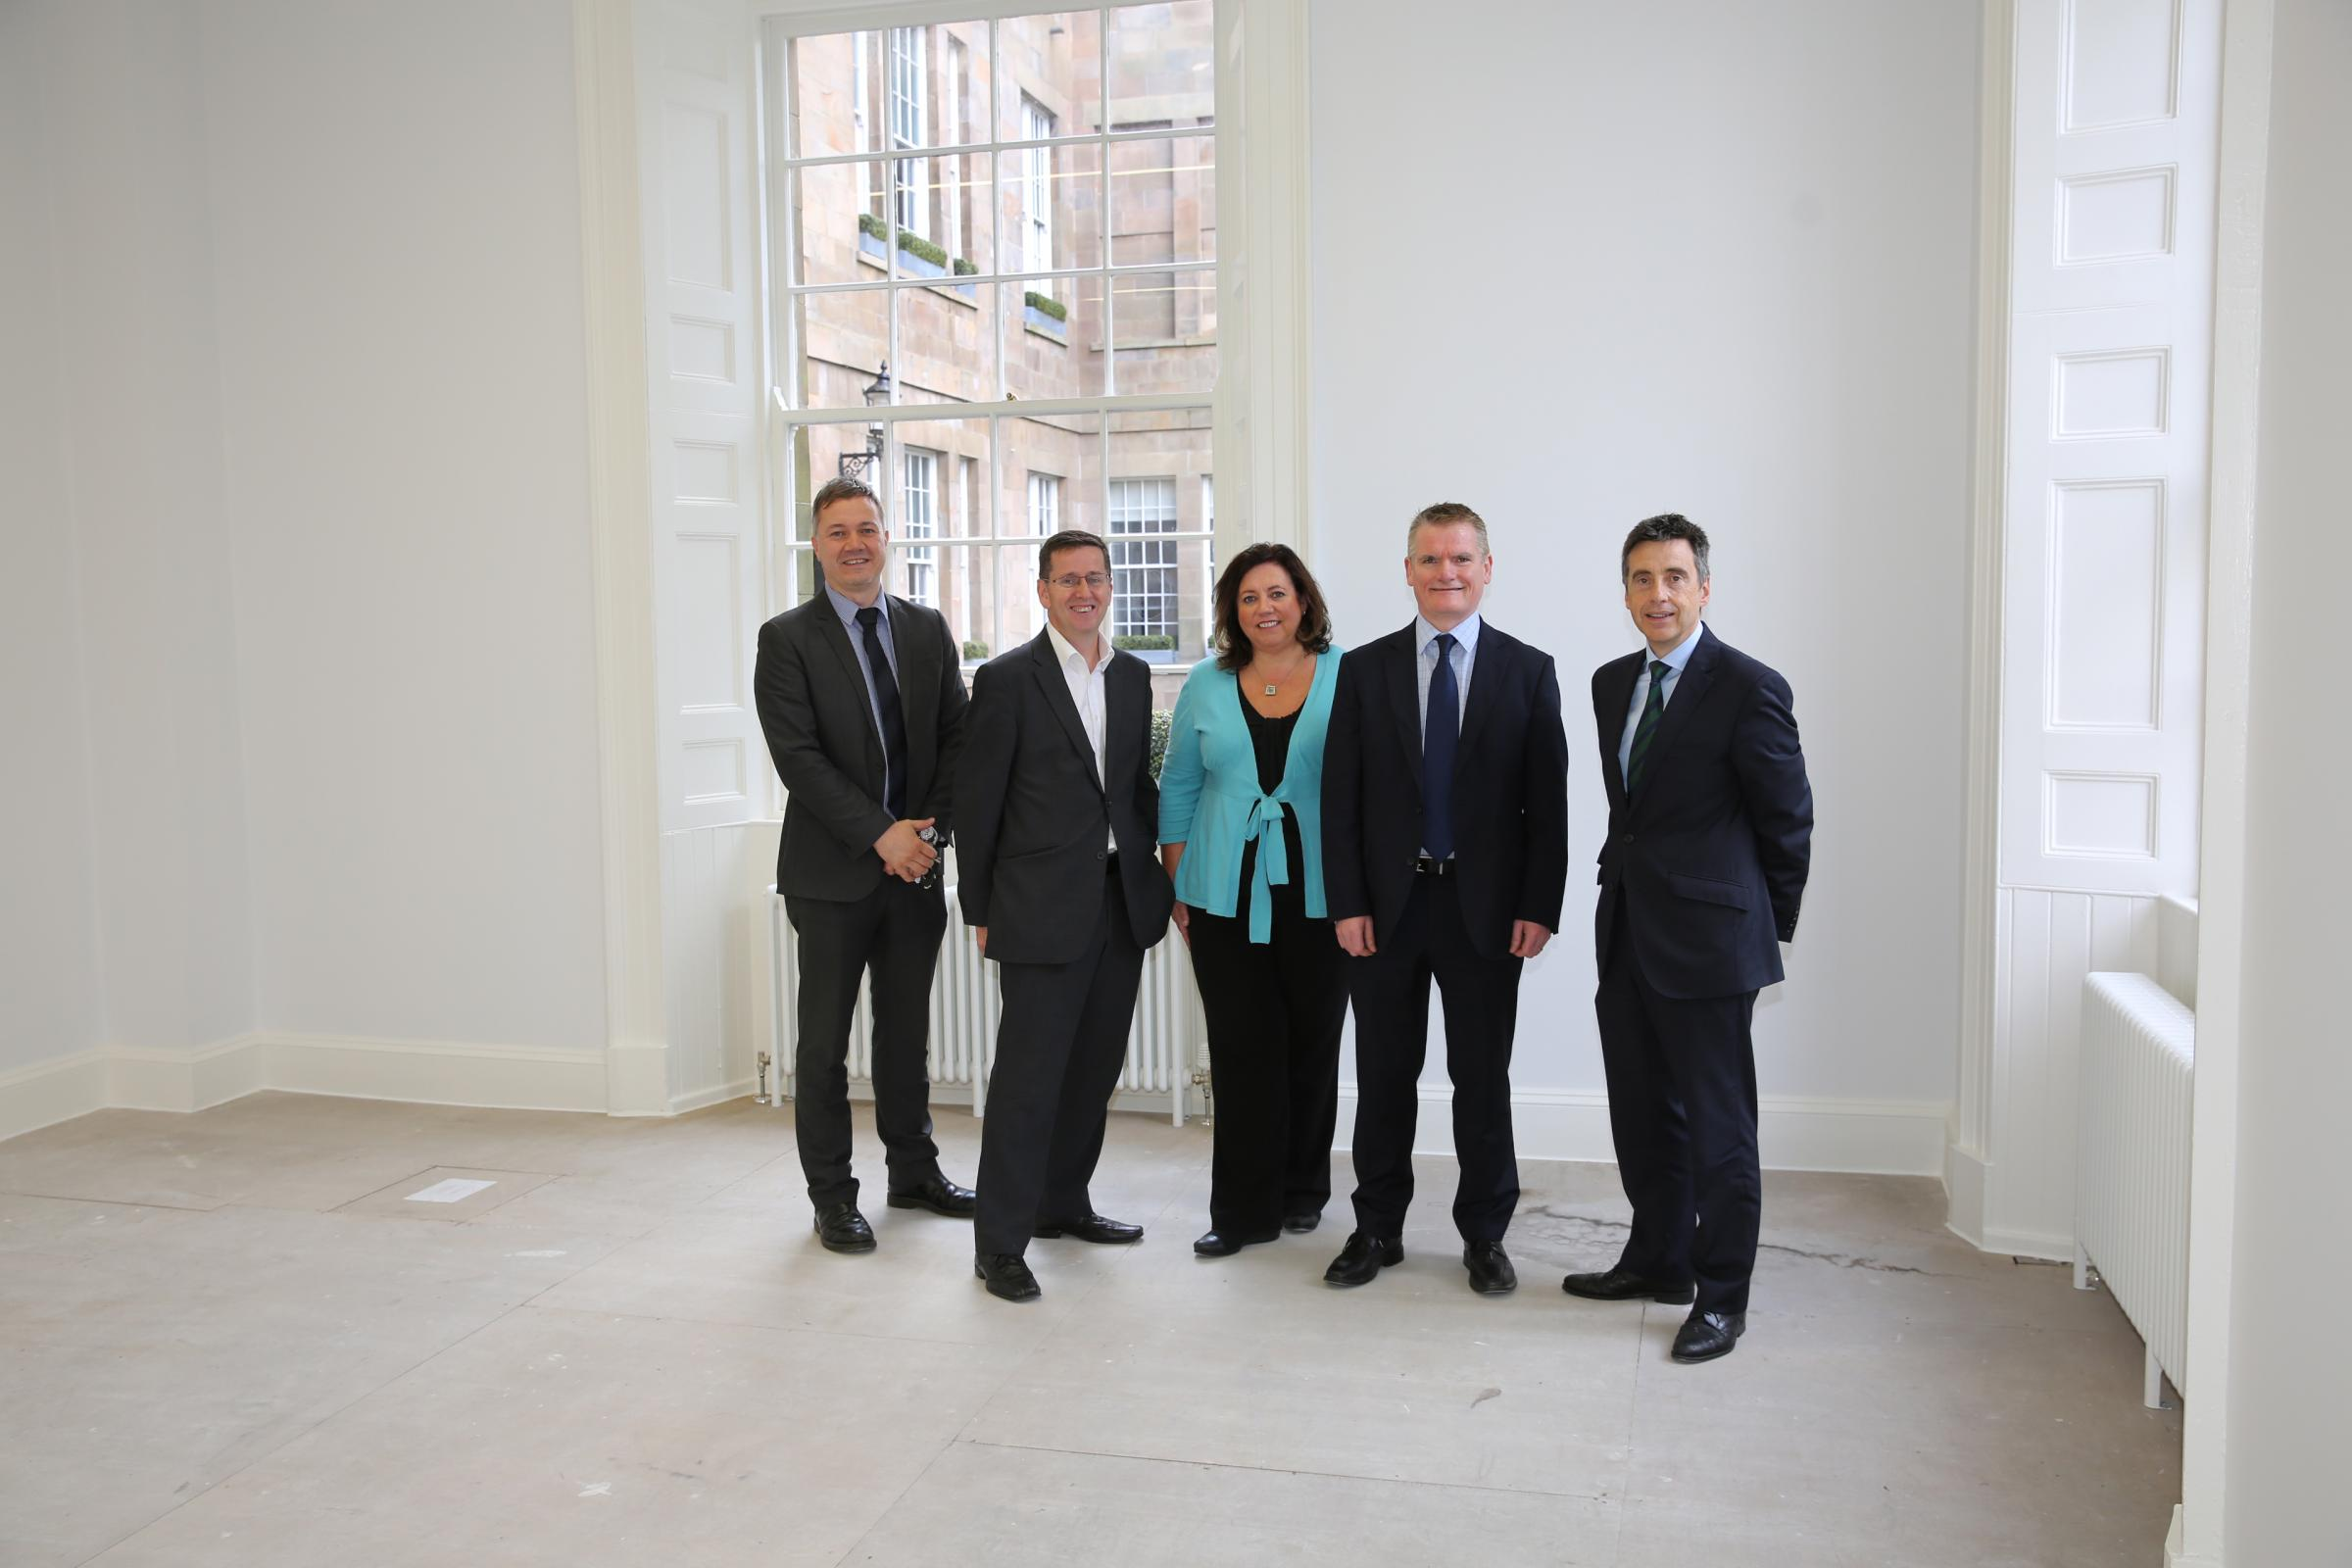 Greenock Custom House progress is looked at by David Martin from Riverside Inverclyde, Councillor Jim Clocherty, Fiona Maguire, RI chairman Gerry McCarthy and RI chief executive Aubrey Fawcett.